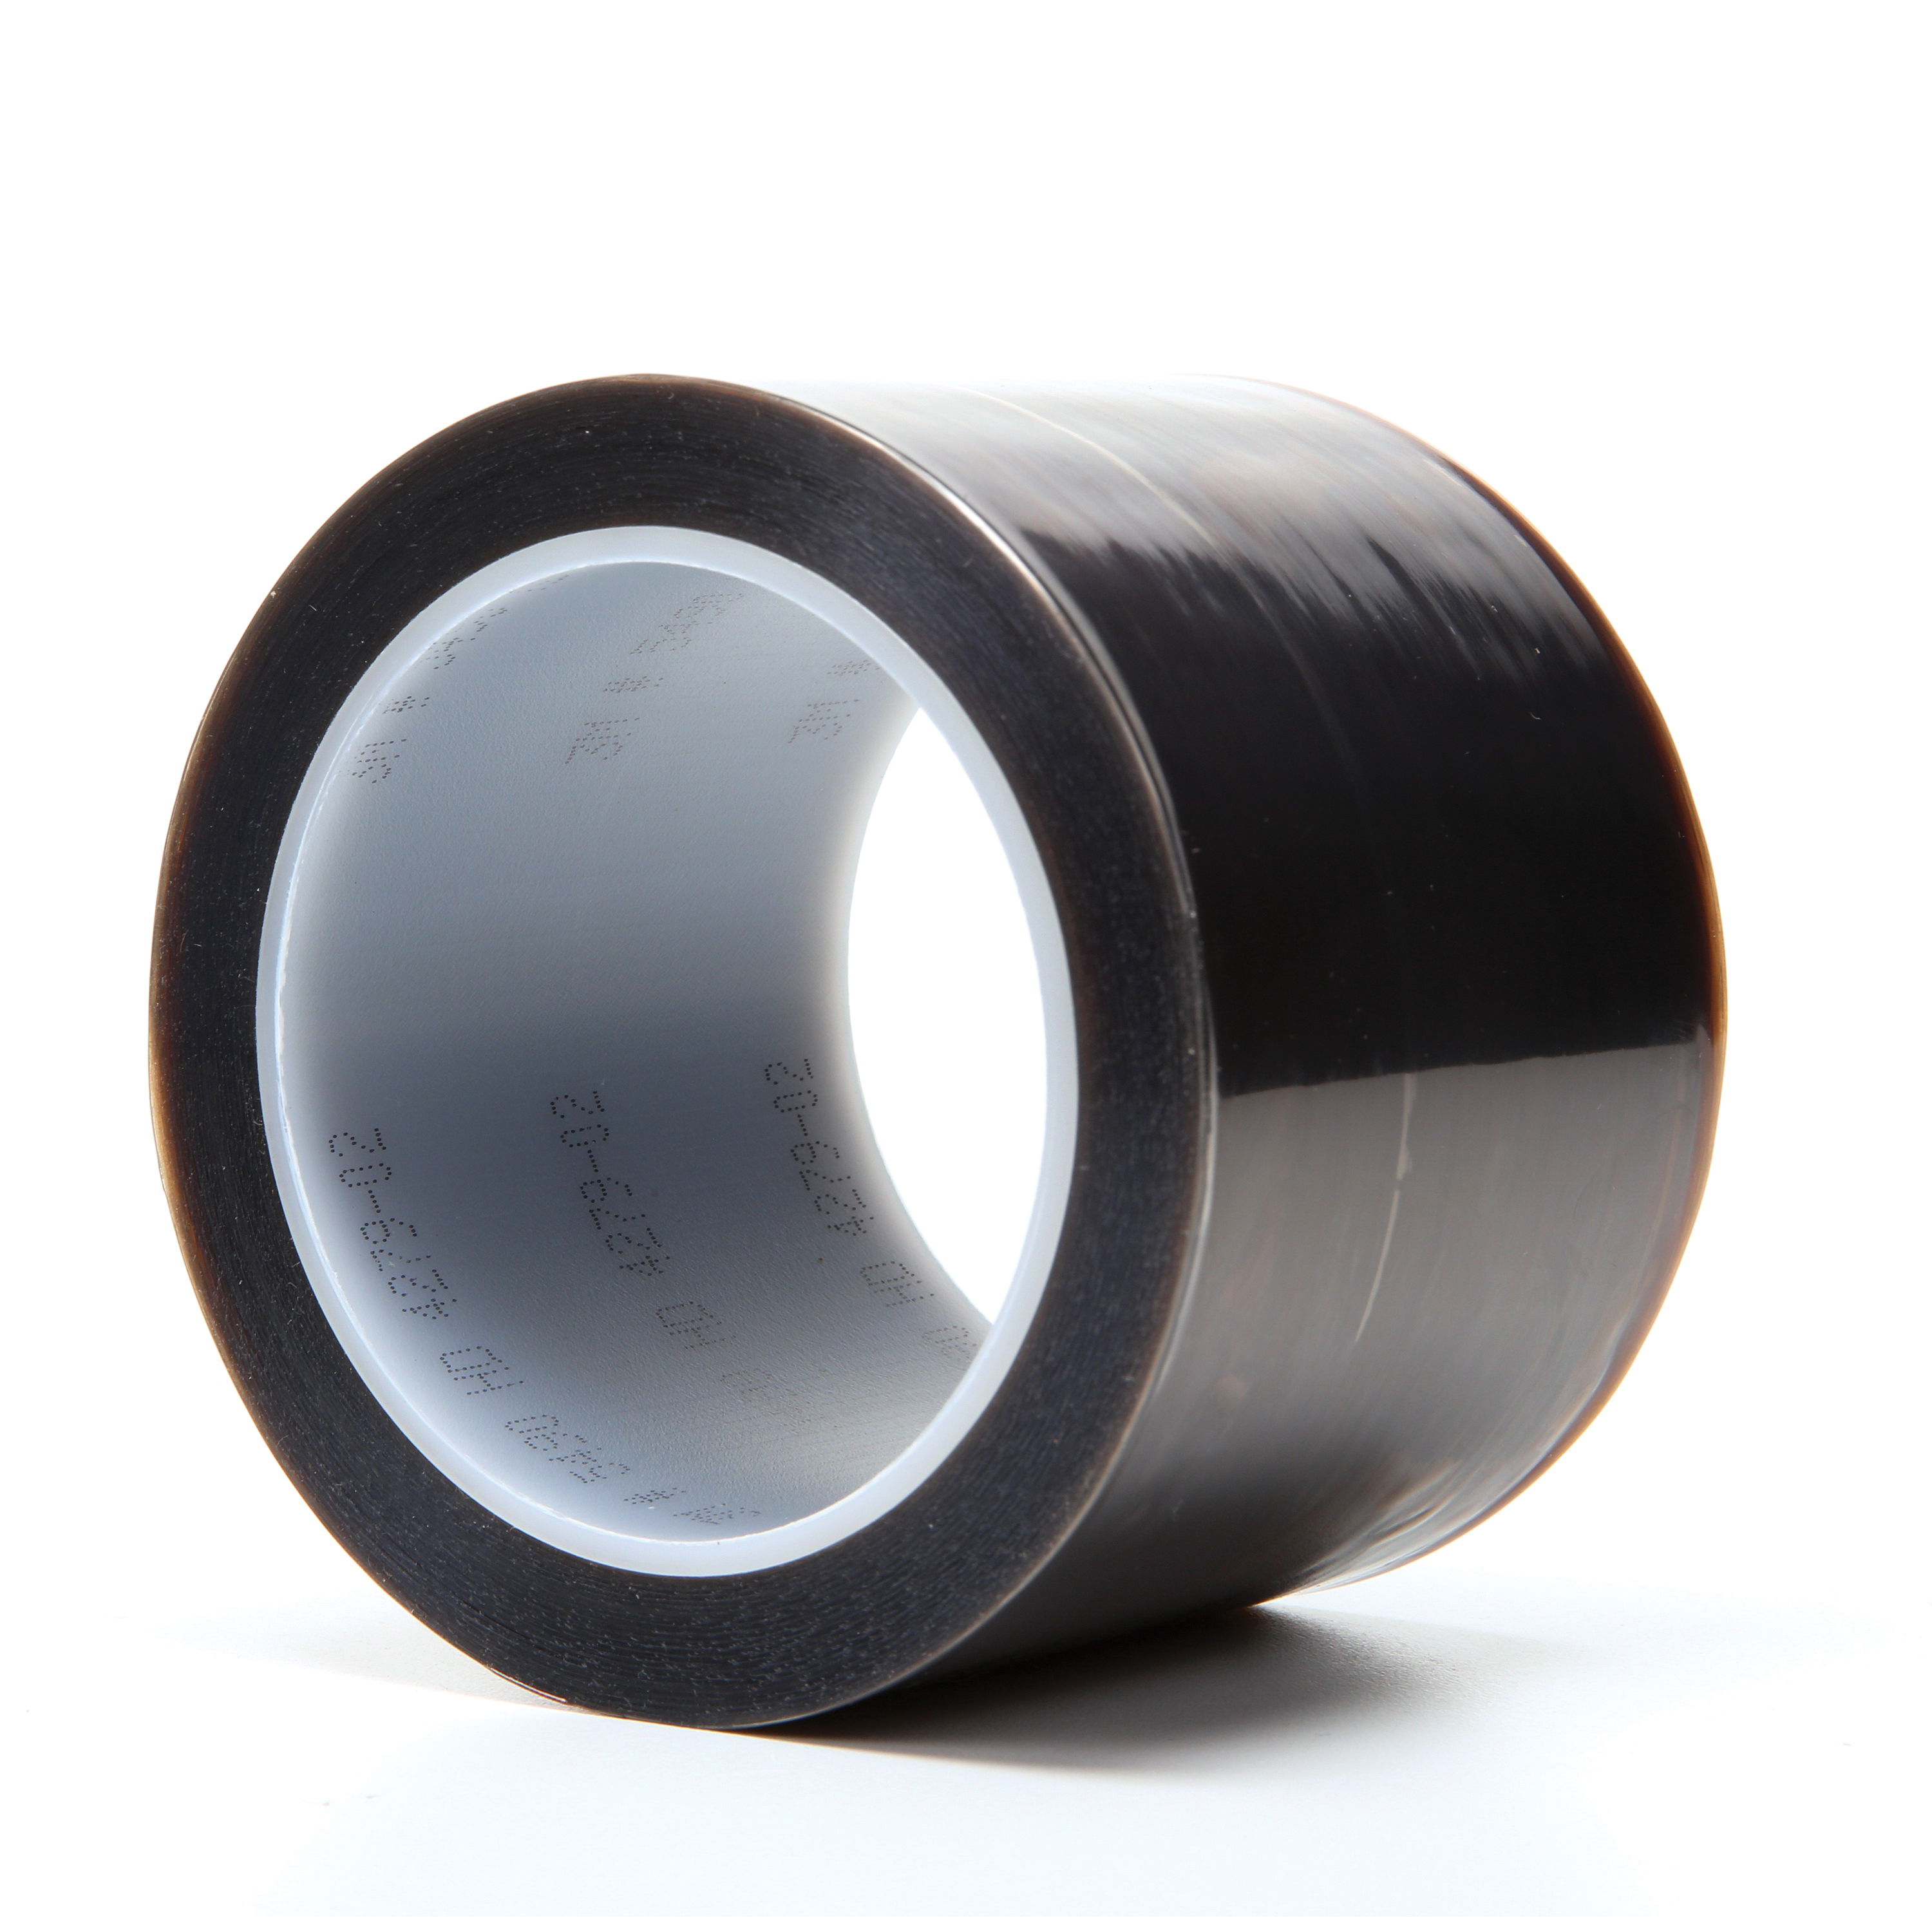 3M™ 021200-05876 Film Tape, 36 yd L x 3 in W, 3.7 mil THK, Silicone Adhesive, 2 mil Extruded PTFE Backing, Gray